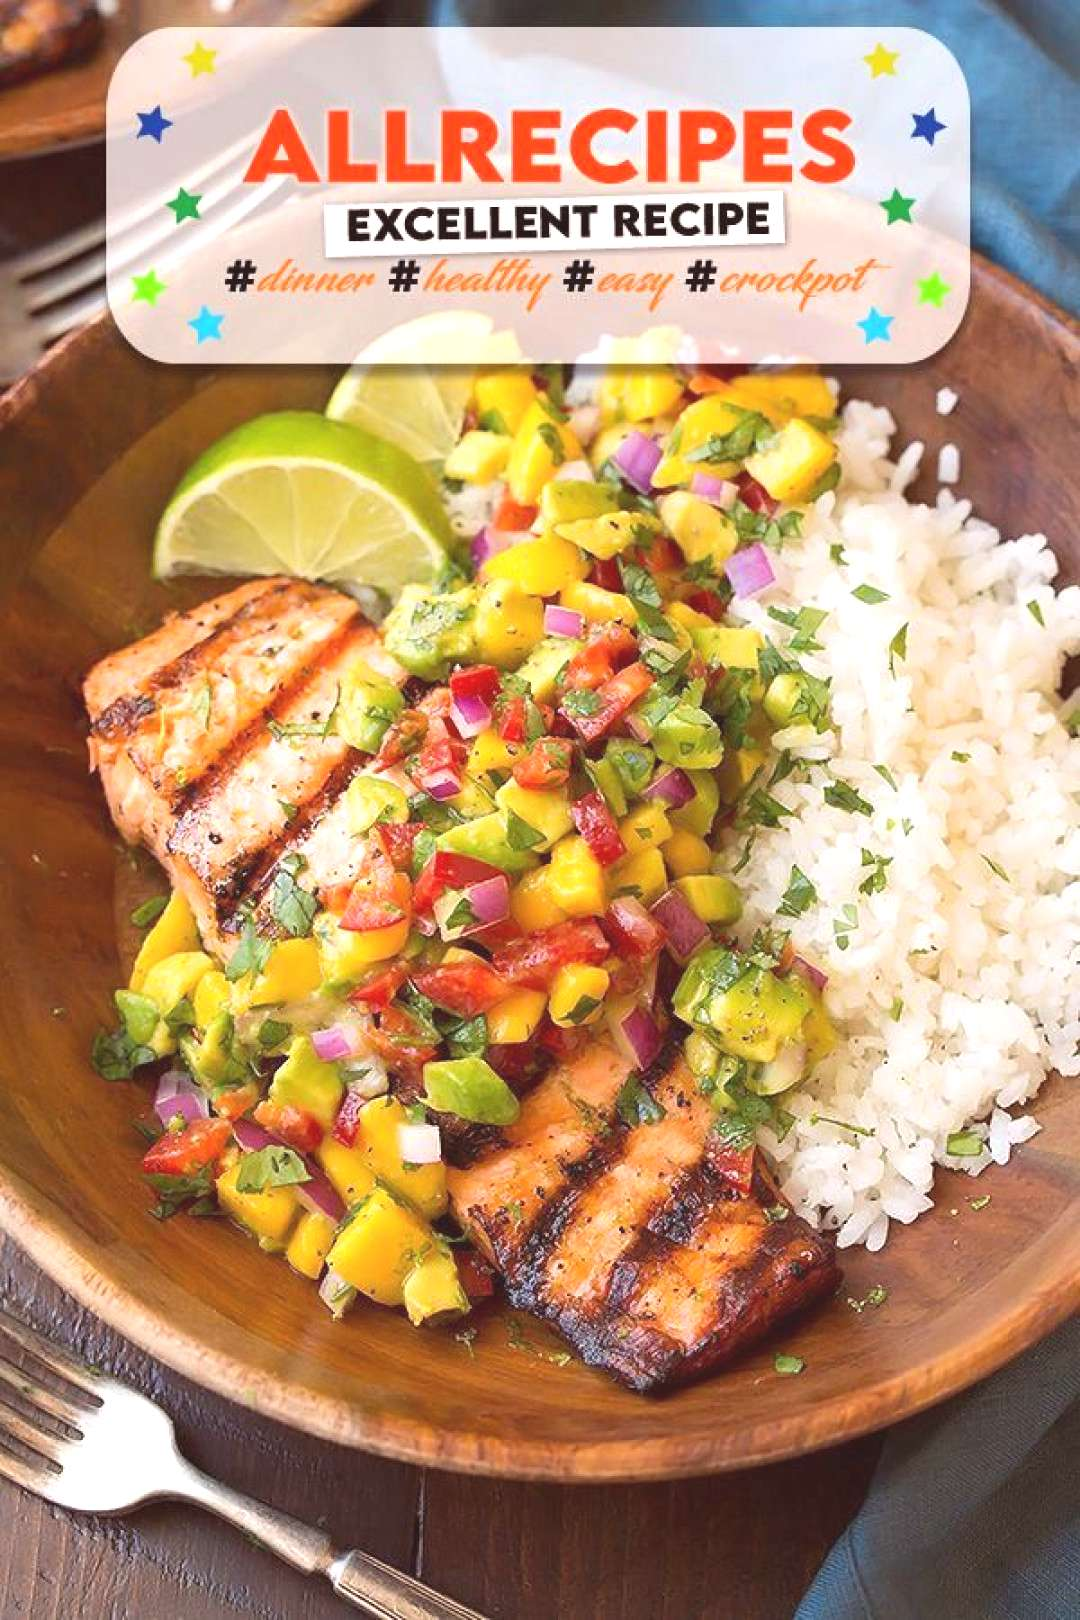 Grilled Salmon with Mango Salsa & Coconut Rice - Cooking Classy - - Hühnchen, Reis, Mango Salsa: K